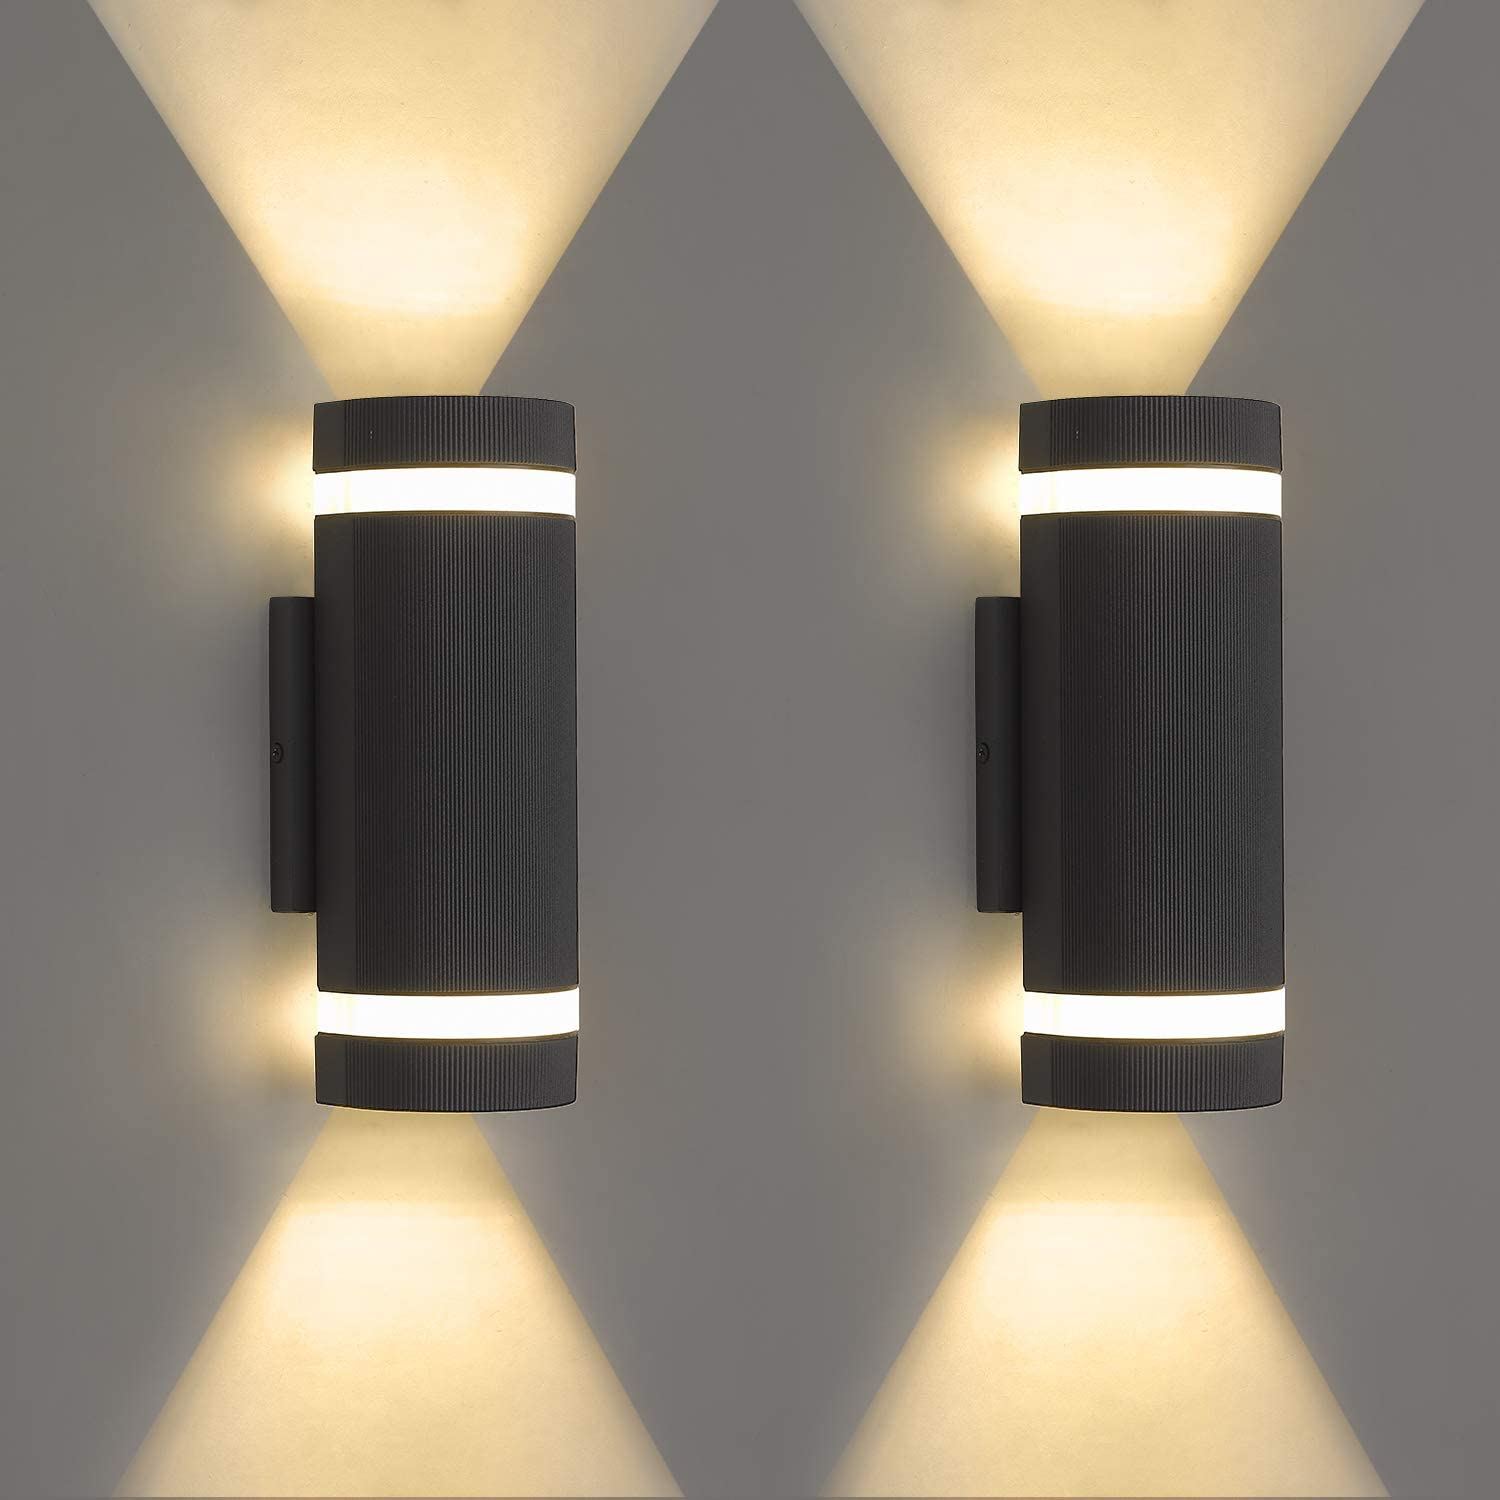 LMS 2 Pack LED Semi Cylinder Up and Down Lights Outdoor Wall Lights 3000k 14W 1120lm, Modern Aluminum Waterproof Outdoor Wall Sconce Wall Mount, Black LMS-WL10